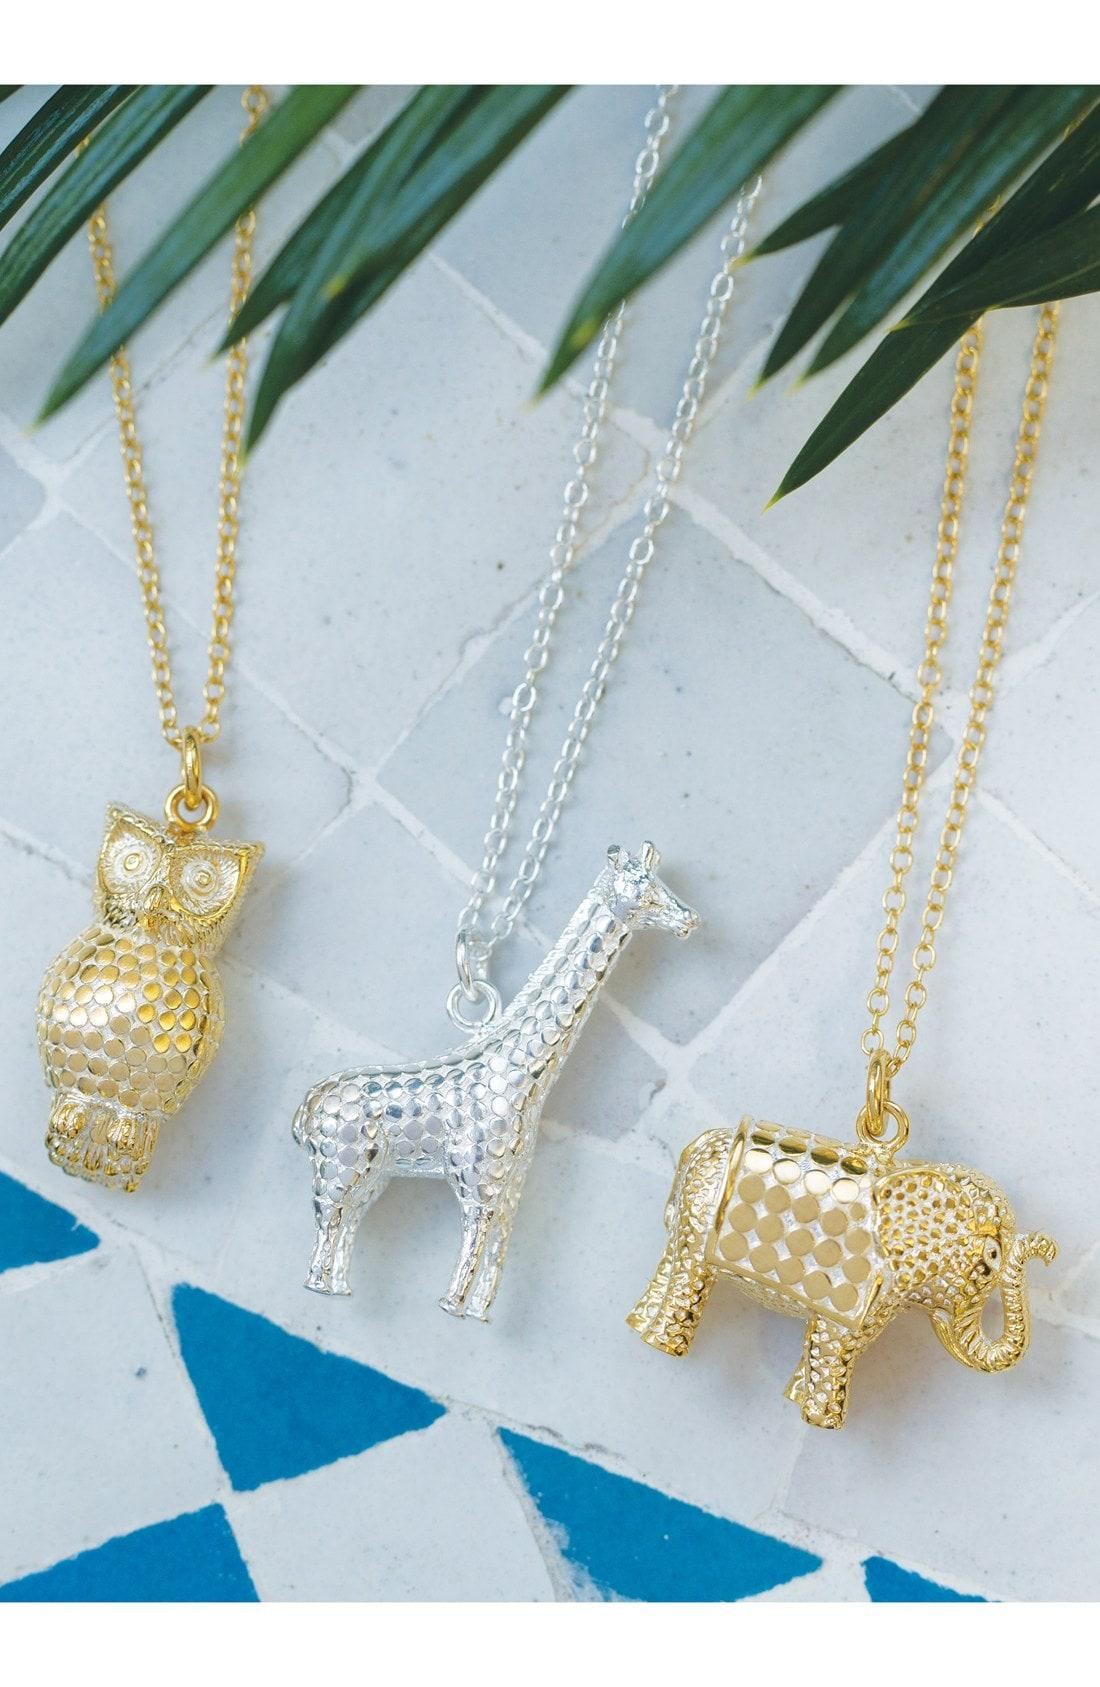 4e613f094 Anna Beck Jewelry That Makes A Difference Elephant Pendant Necklace In  Gold/ Silver